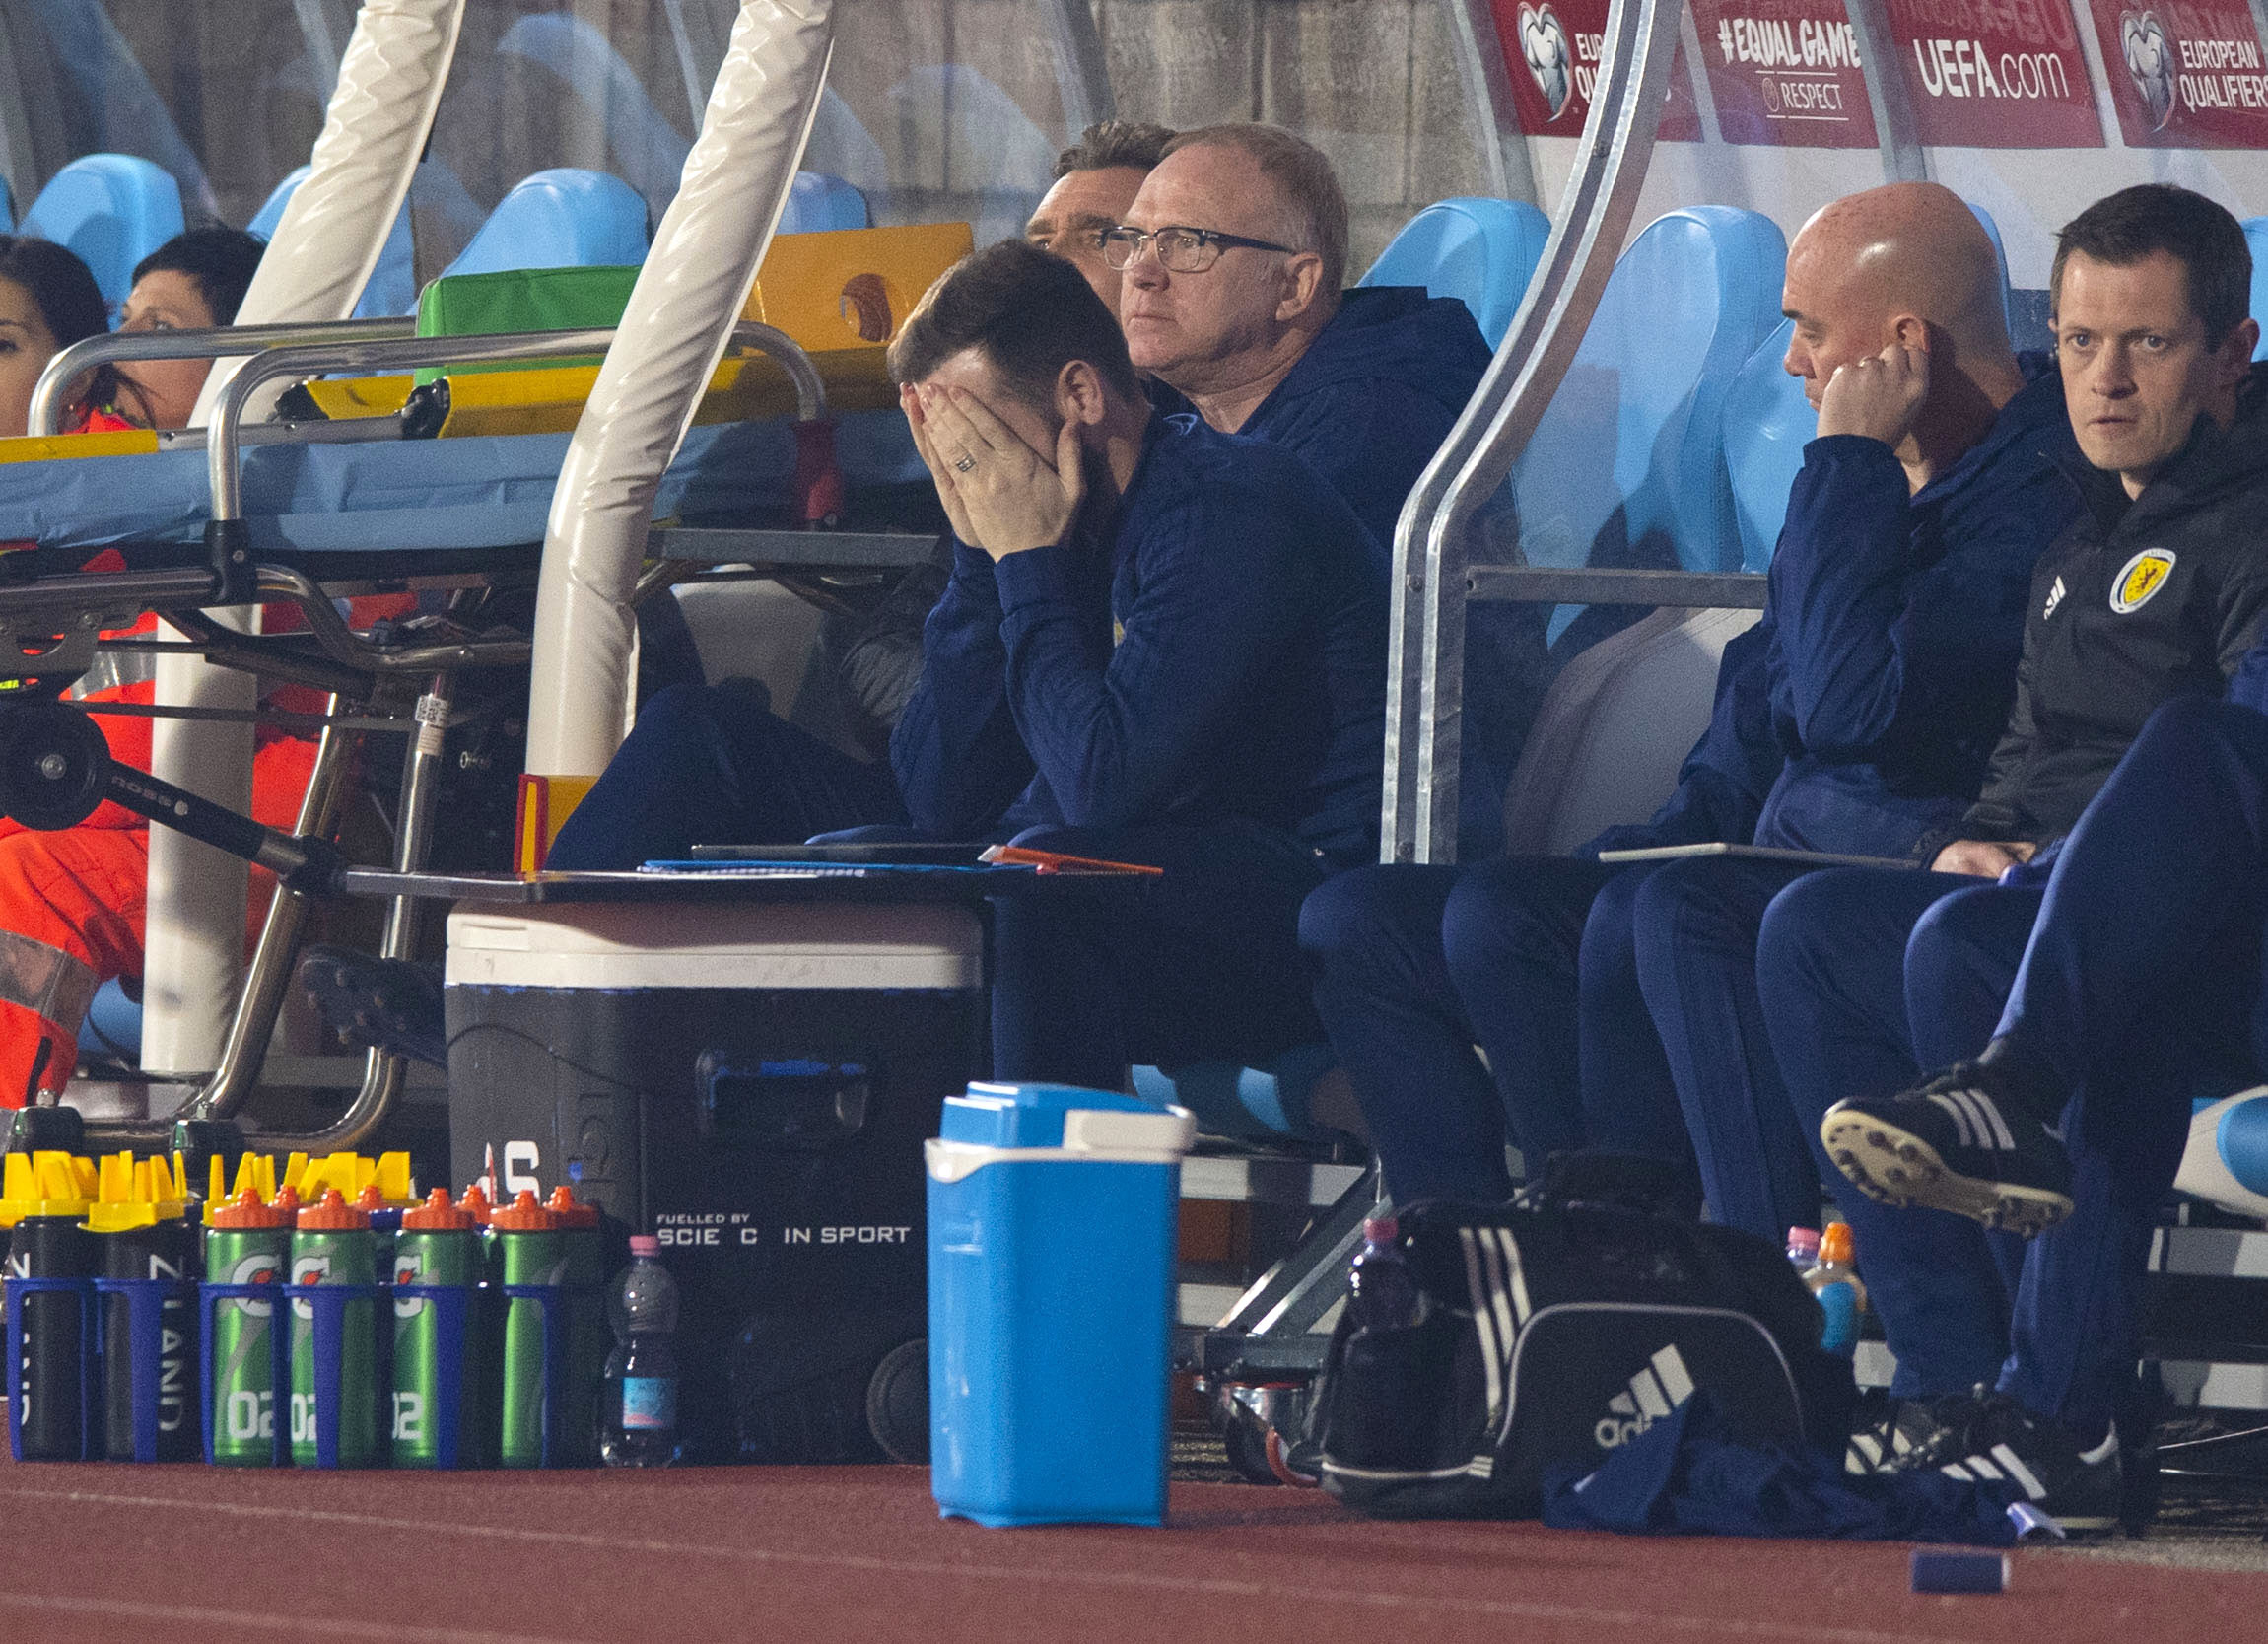 Scotland assistant manager James McFadden, left, shows his frustration as manager Alex McLeish watches on.